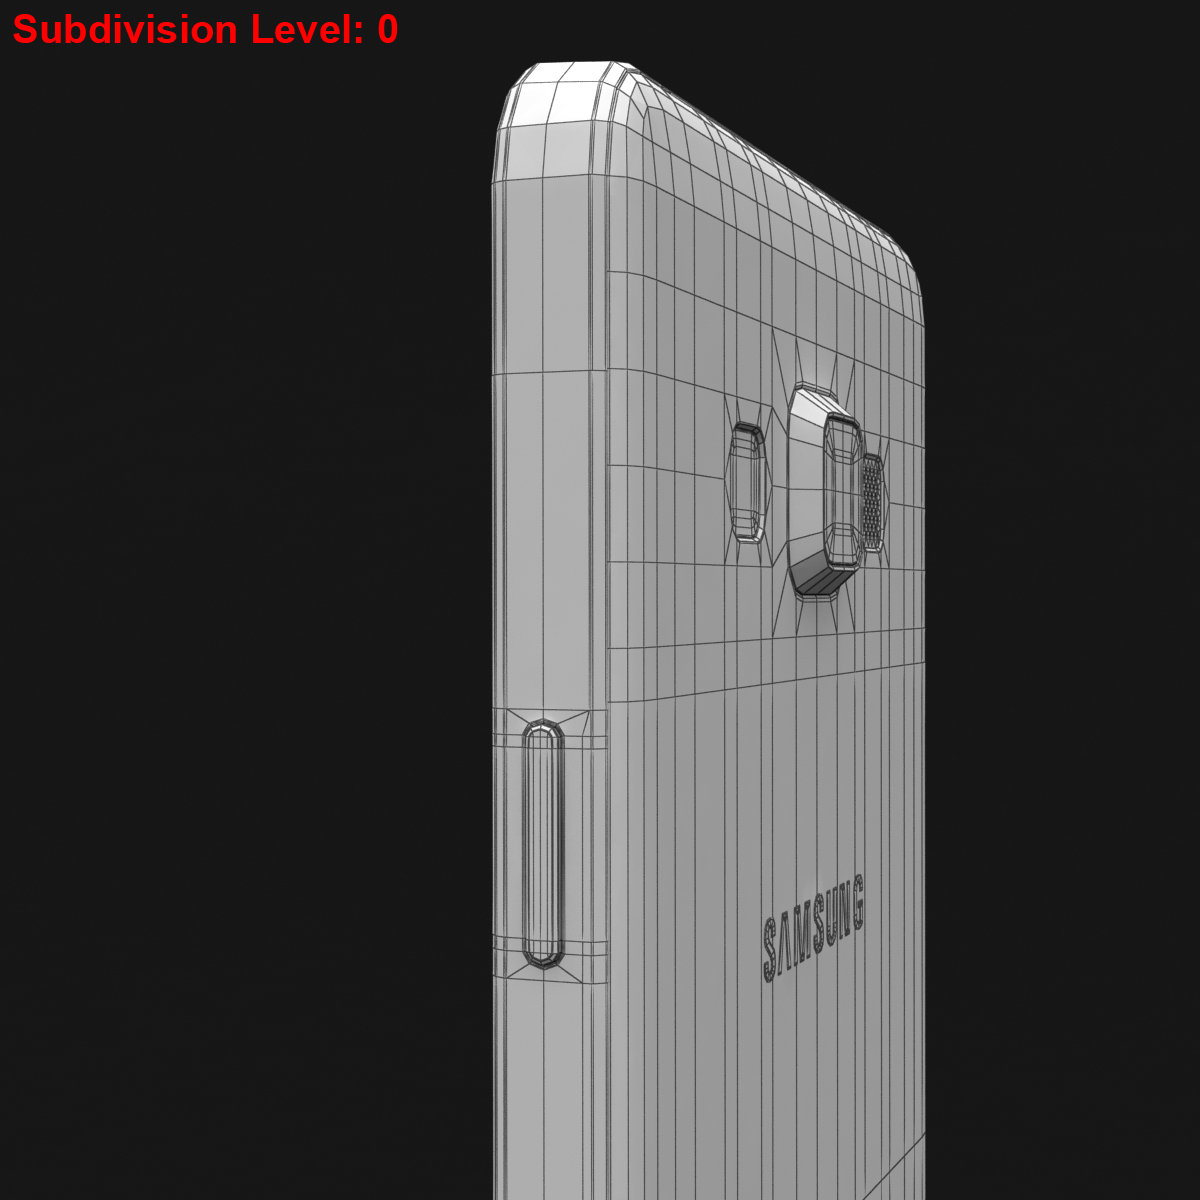 samsung galaxy a3 and a3 duos white 3d model 3ds max fbx c4d obj 206597